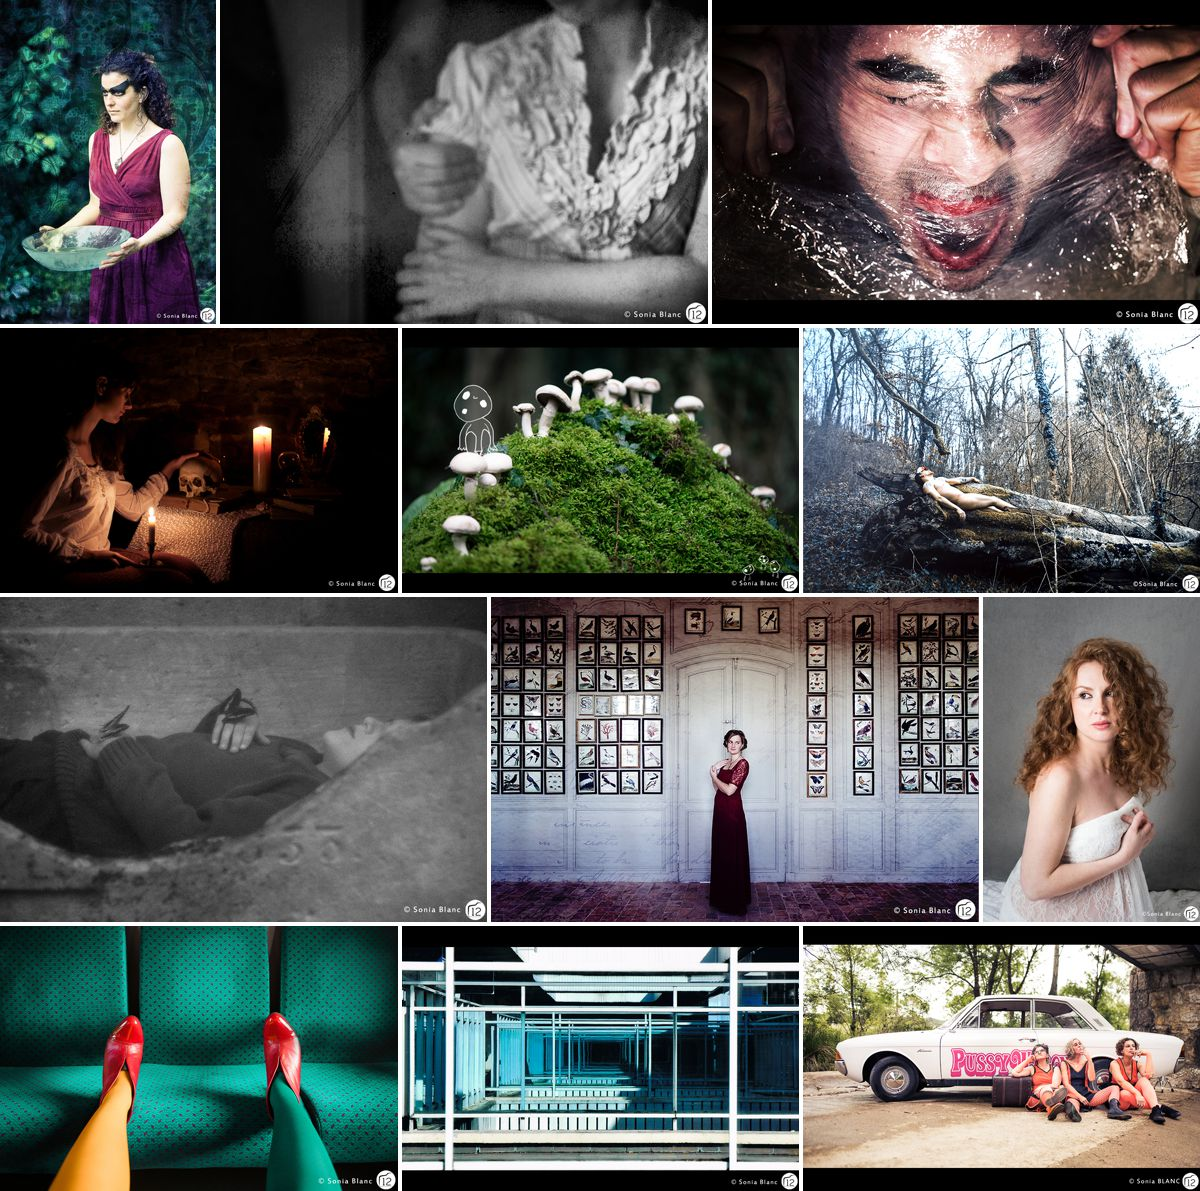 projet photo personnel annuel - 12 photographes s'inspirent